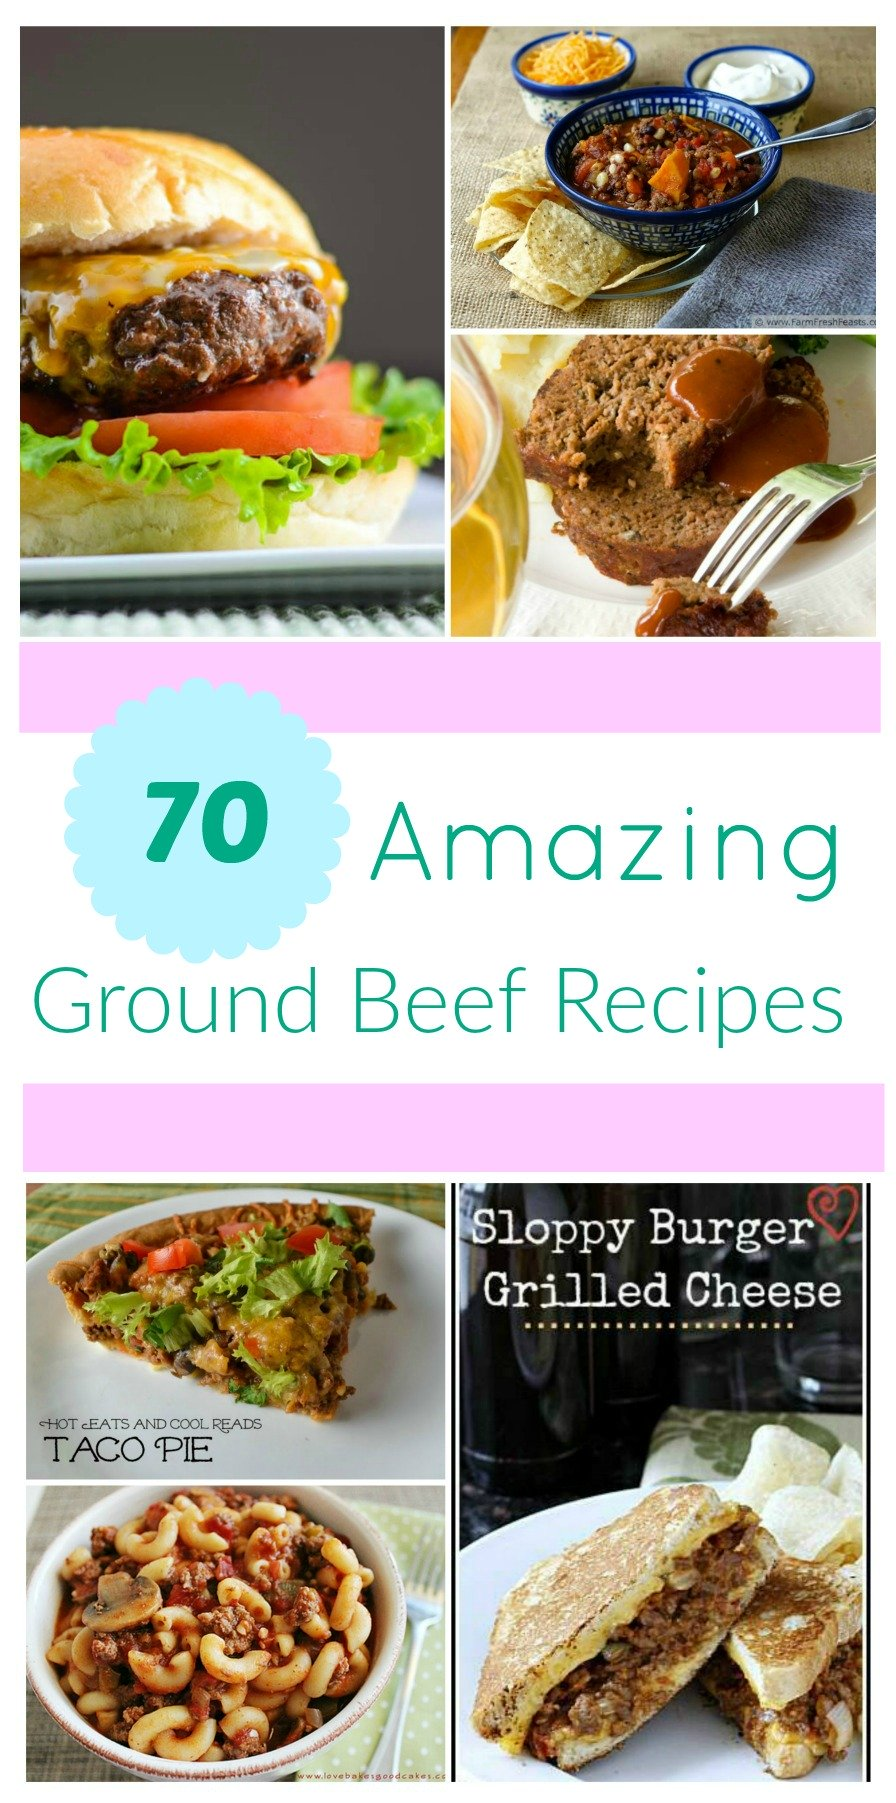 Looking for some quick ground beef recipes? Check out our Beef Ground Roundup, featuring 70 ground beef recipes, here!